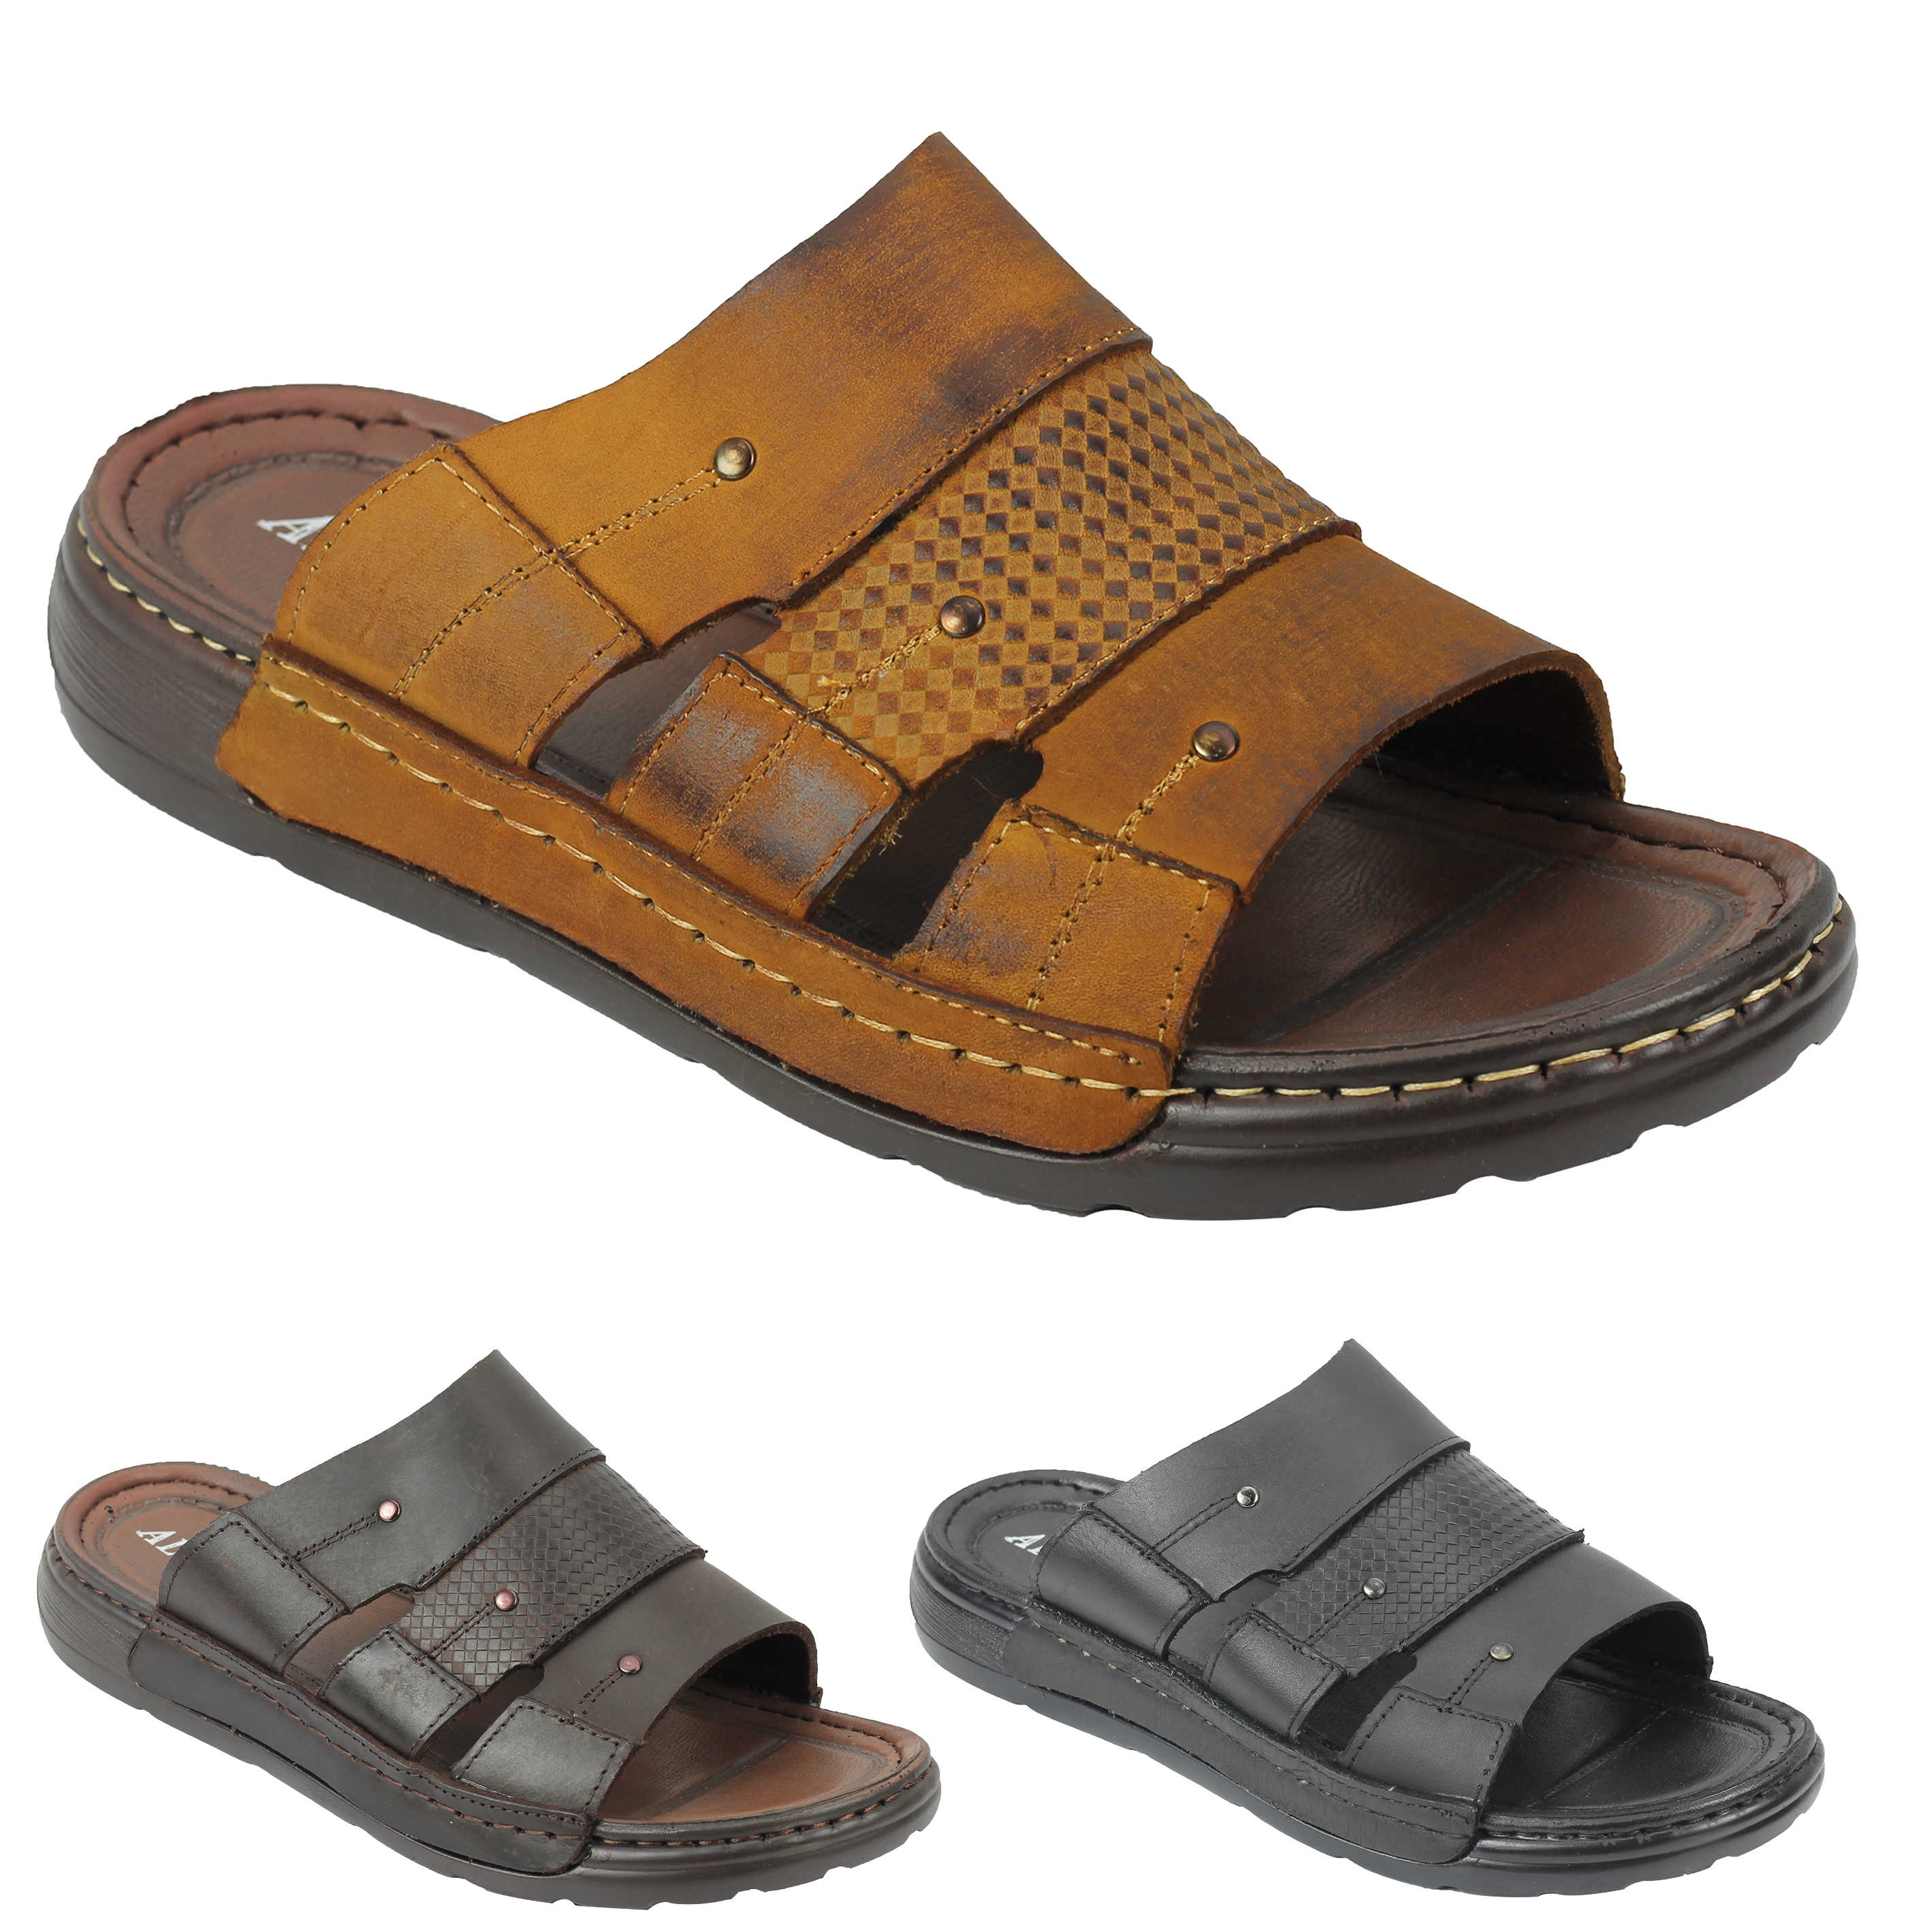 7b8c99af57dd3e Details about New Mens Black Brown Soft Leather Sandals Walking Open Toe  Beach Mules Slippers